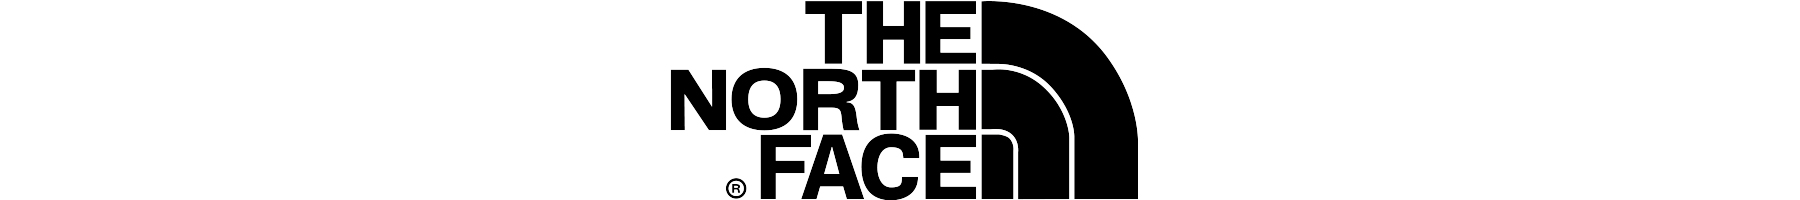 DrJays.com - The North Face